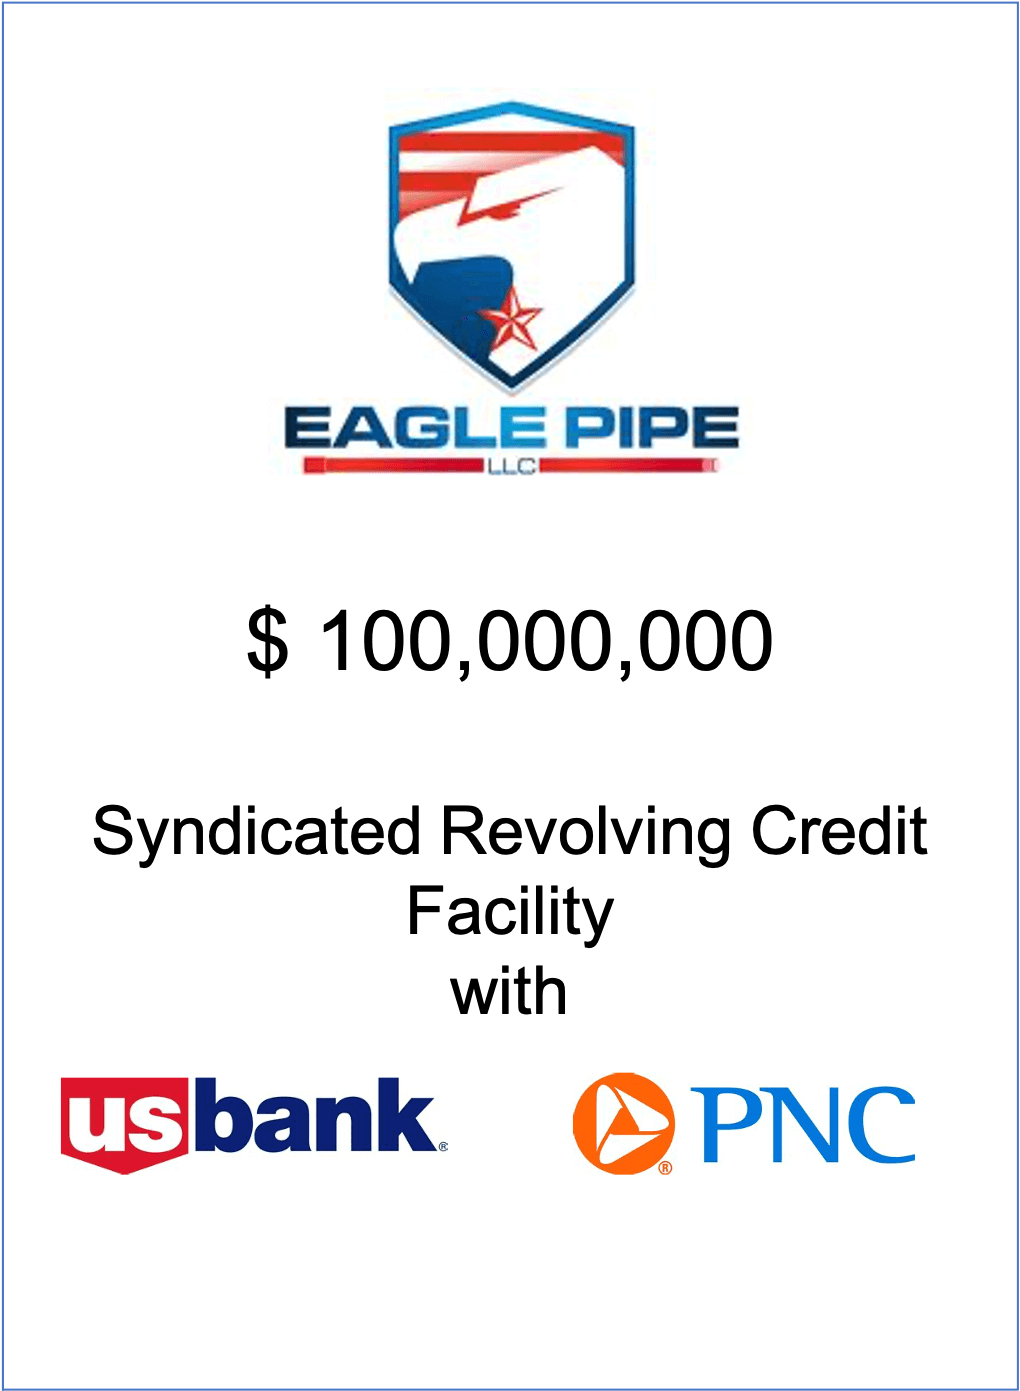 Eagle Pipe increases their Working Capital Facility for a 4th time